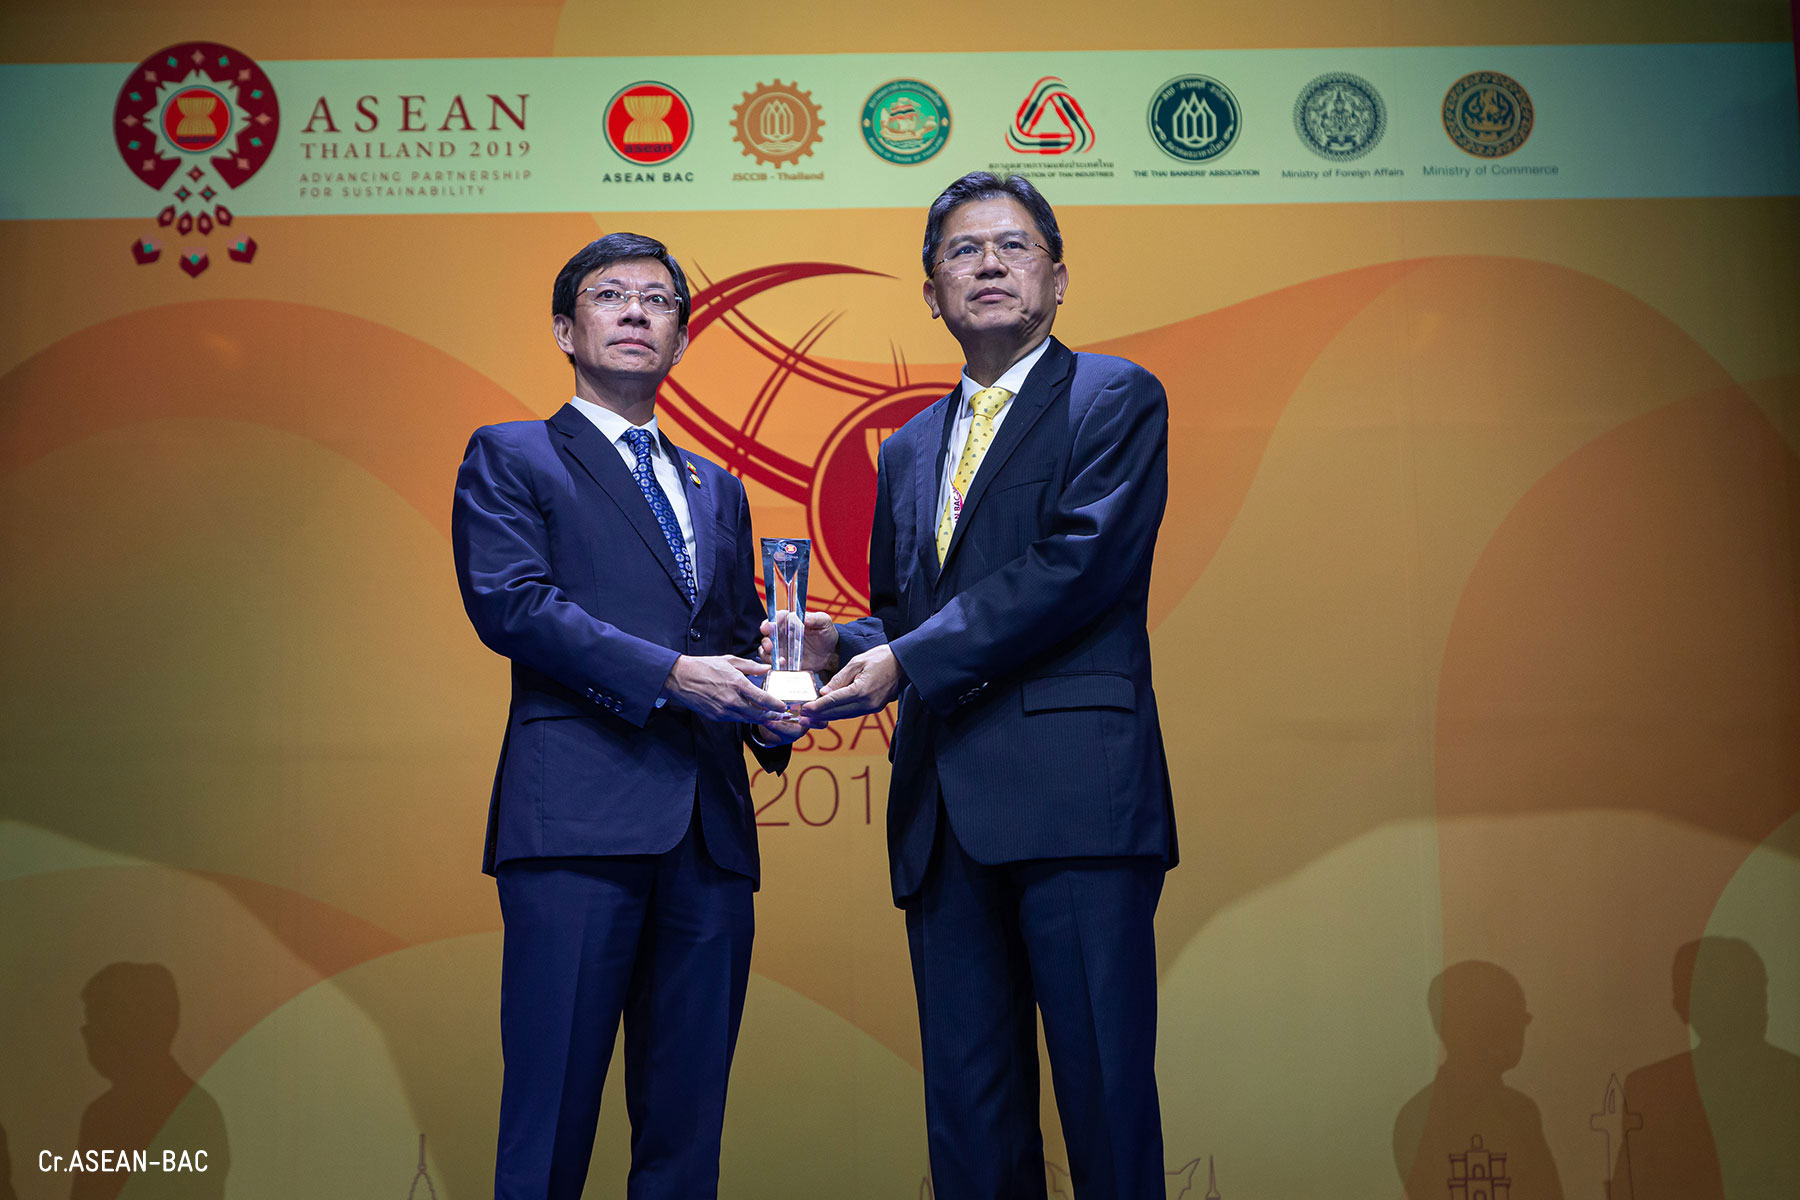 Sea Lion receiving trophy Dr. Win Zaw Aung, Group CEO of Sea Lion Group and Mr. Predee Daochai, Chairman of the Thai Bankers' Association